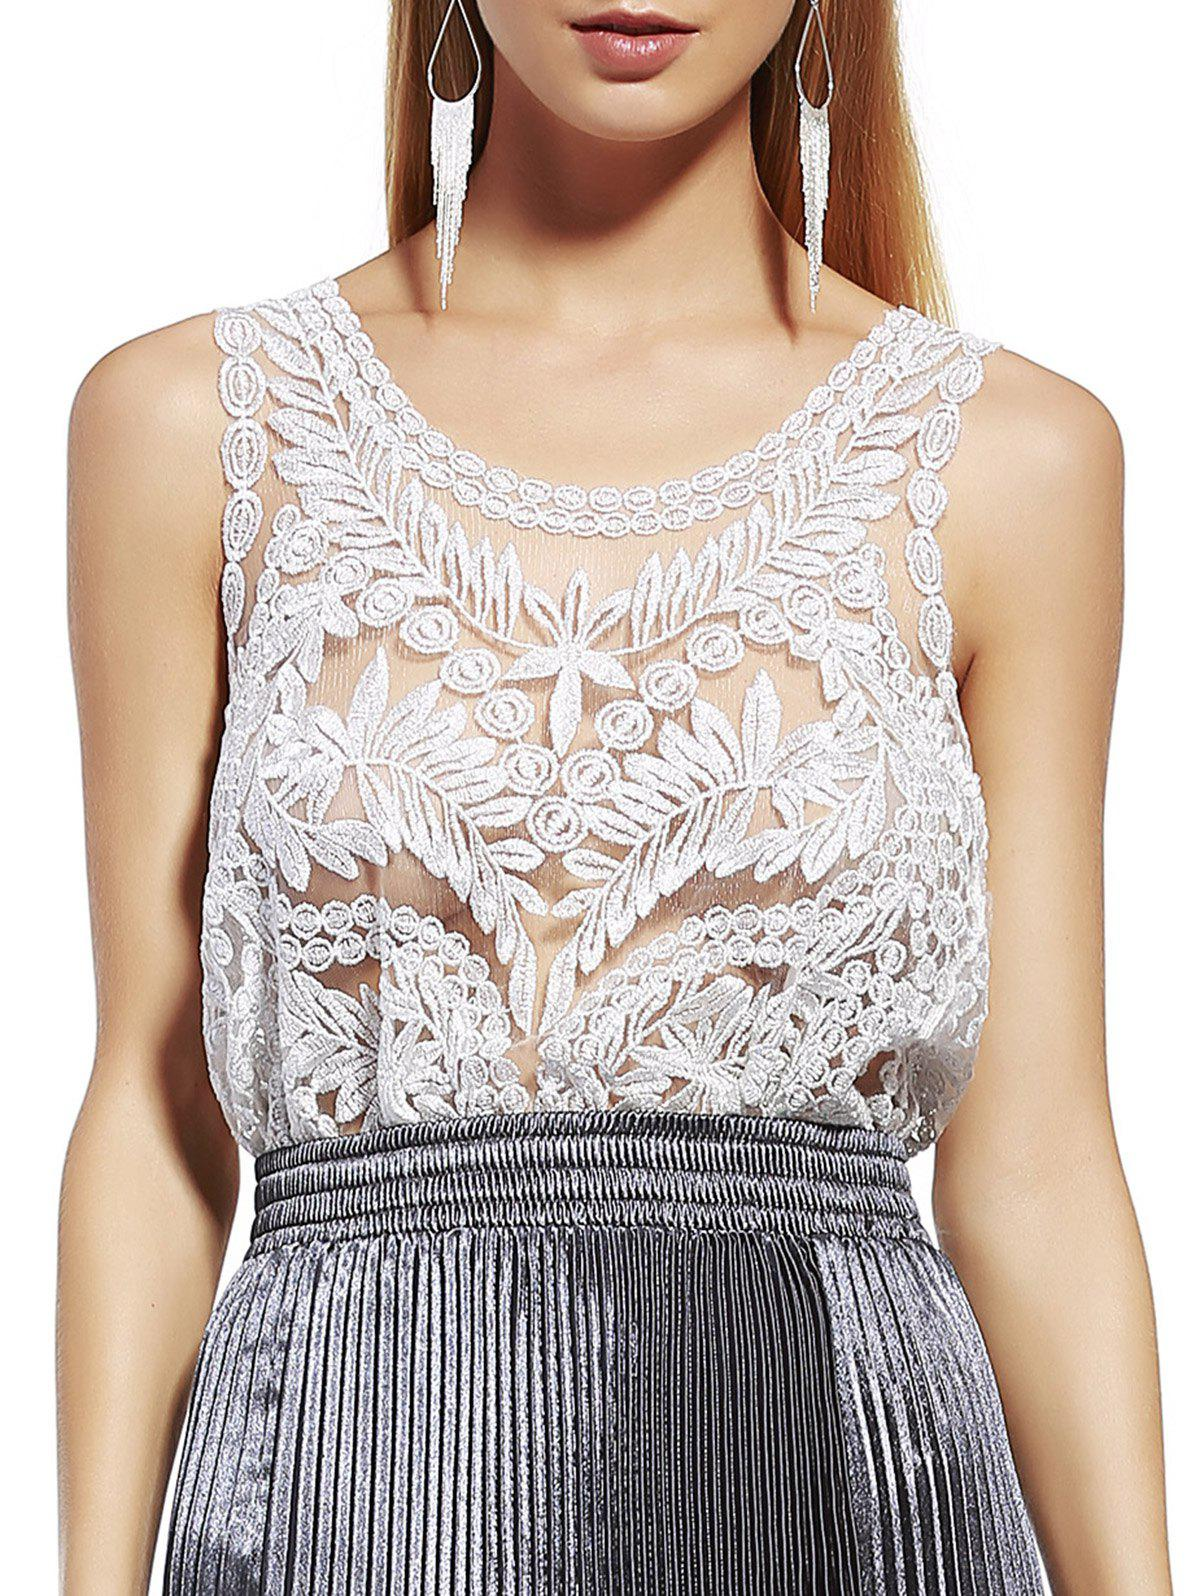 Stylish Women's Scoop Neck Silk Thread Lace See-Through Sleeveless Blouse - WHITE GOLDEN ONE SIZE(FIT SIZE XS TO M)